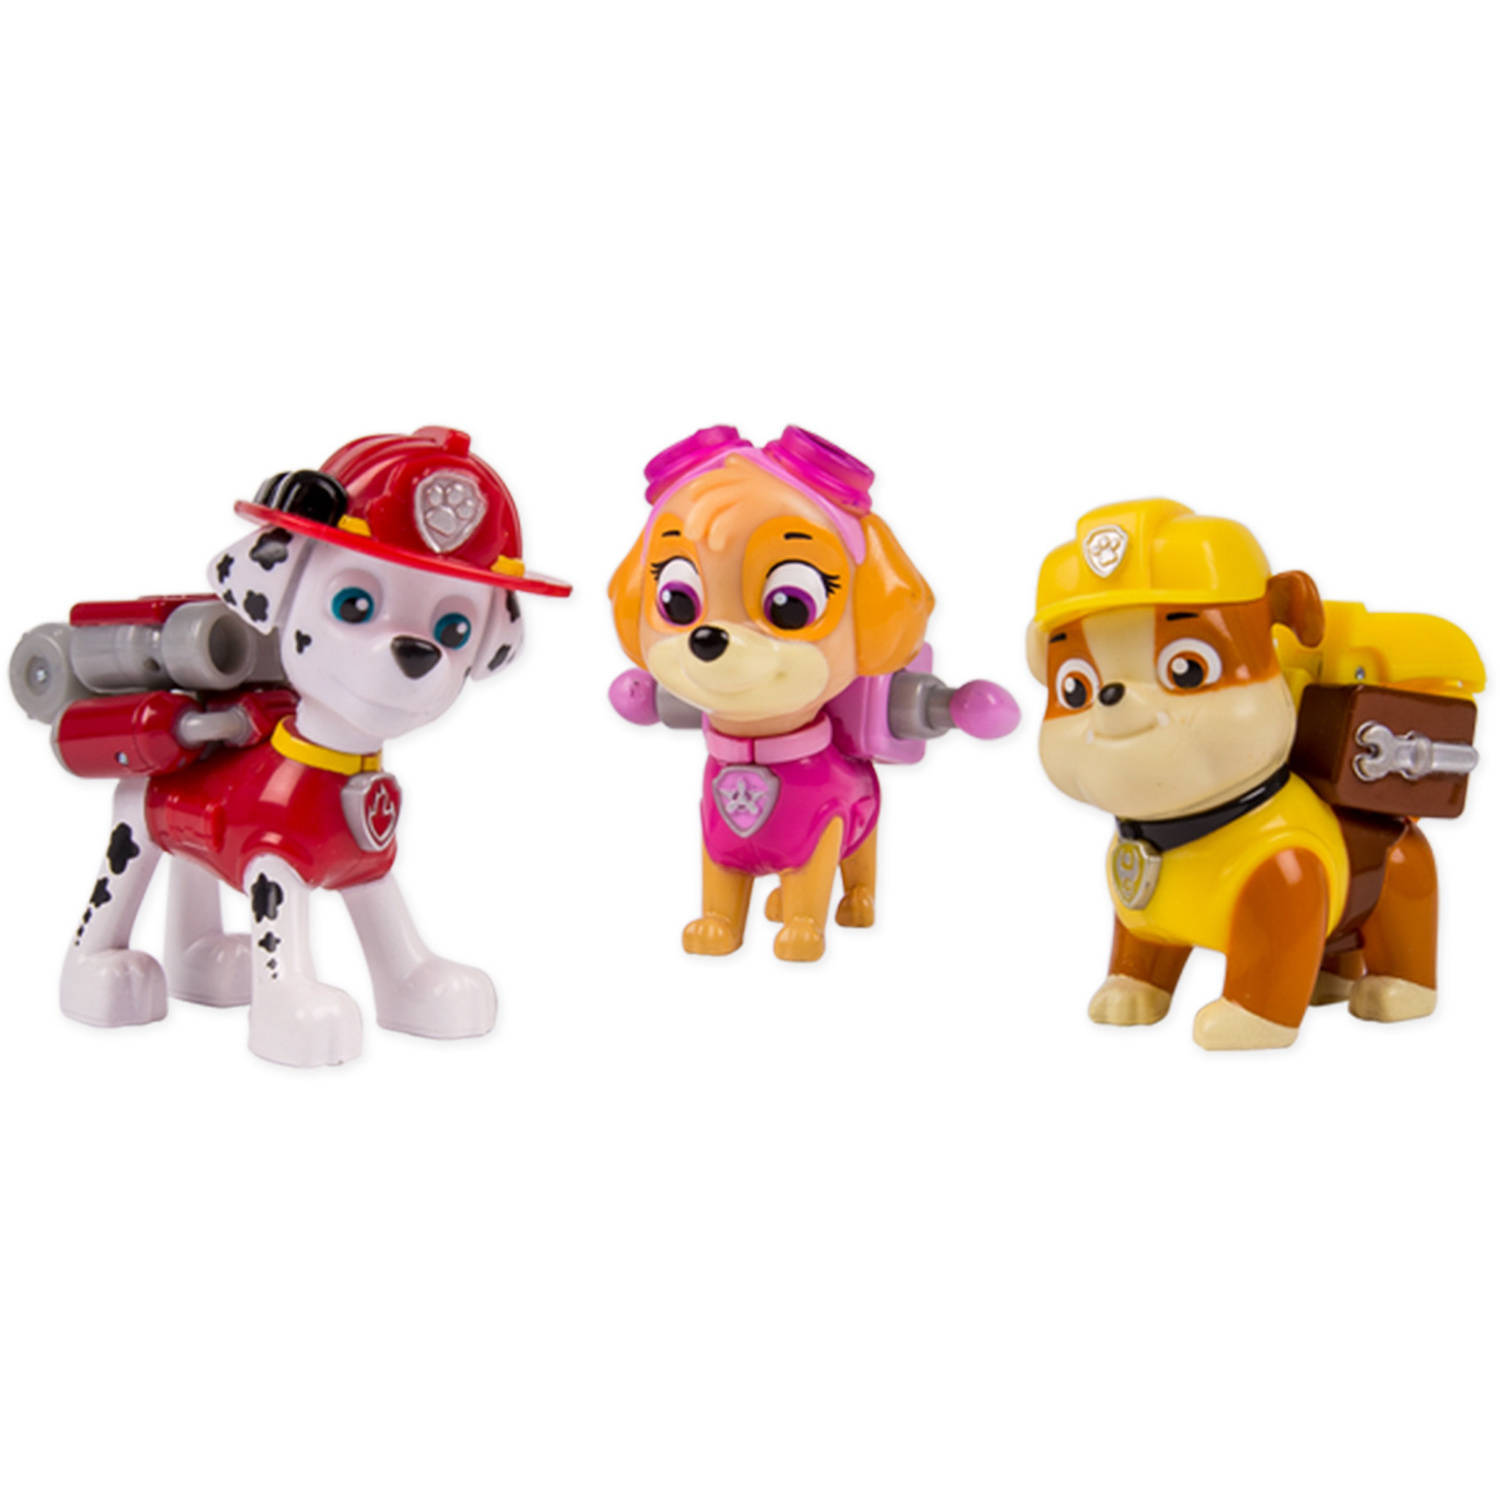 Nickelodeon Paw Patrol - Action Pack Pups 3pk Figure Set Marshal, Skye, Rubble